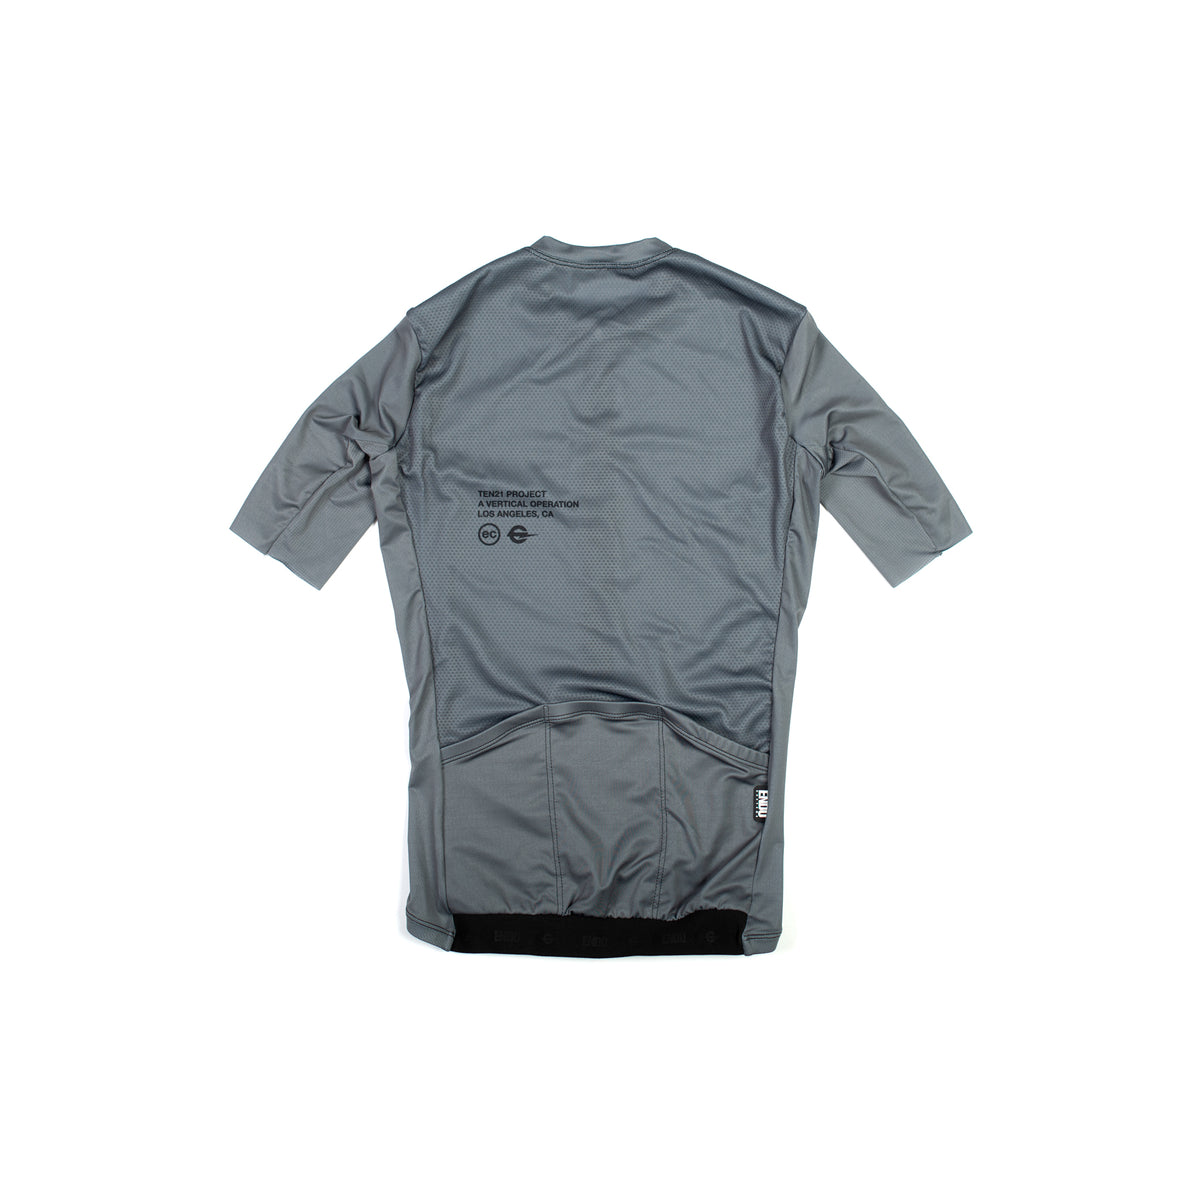 CORE - LADERA 2.0 JERSEY - GREY